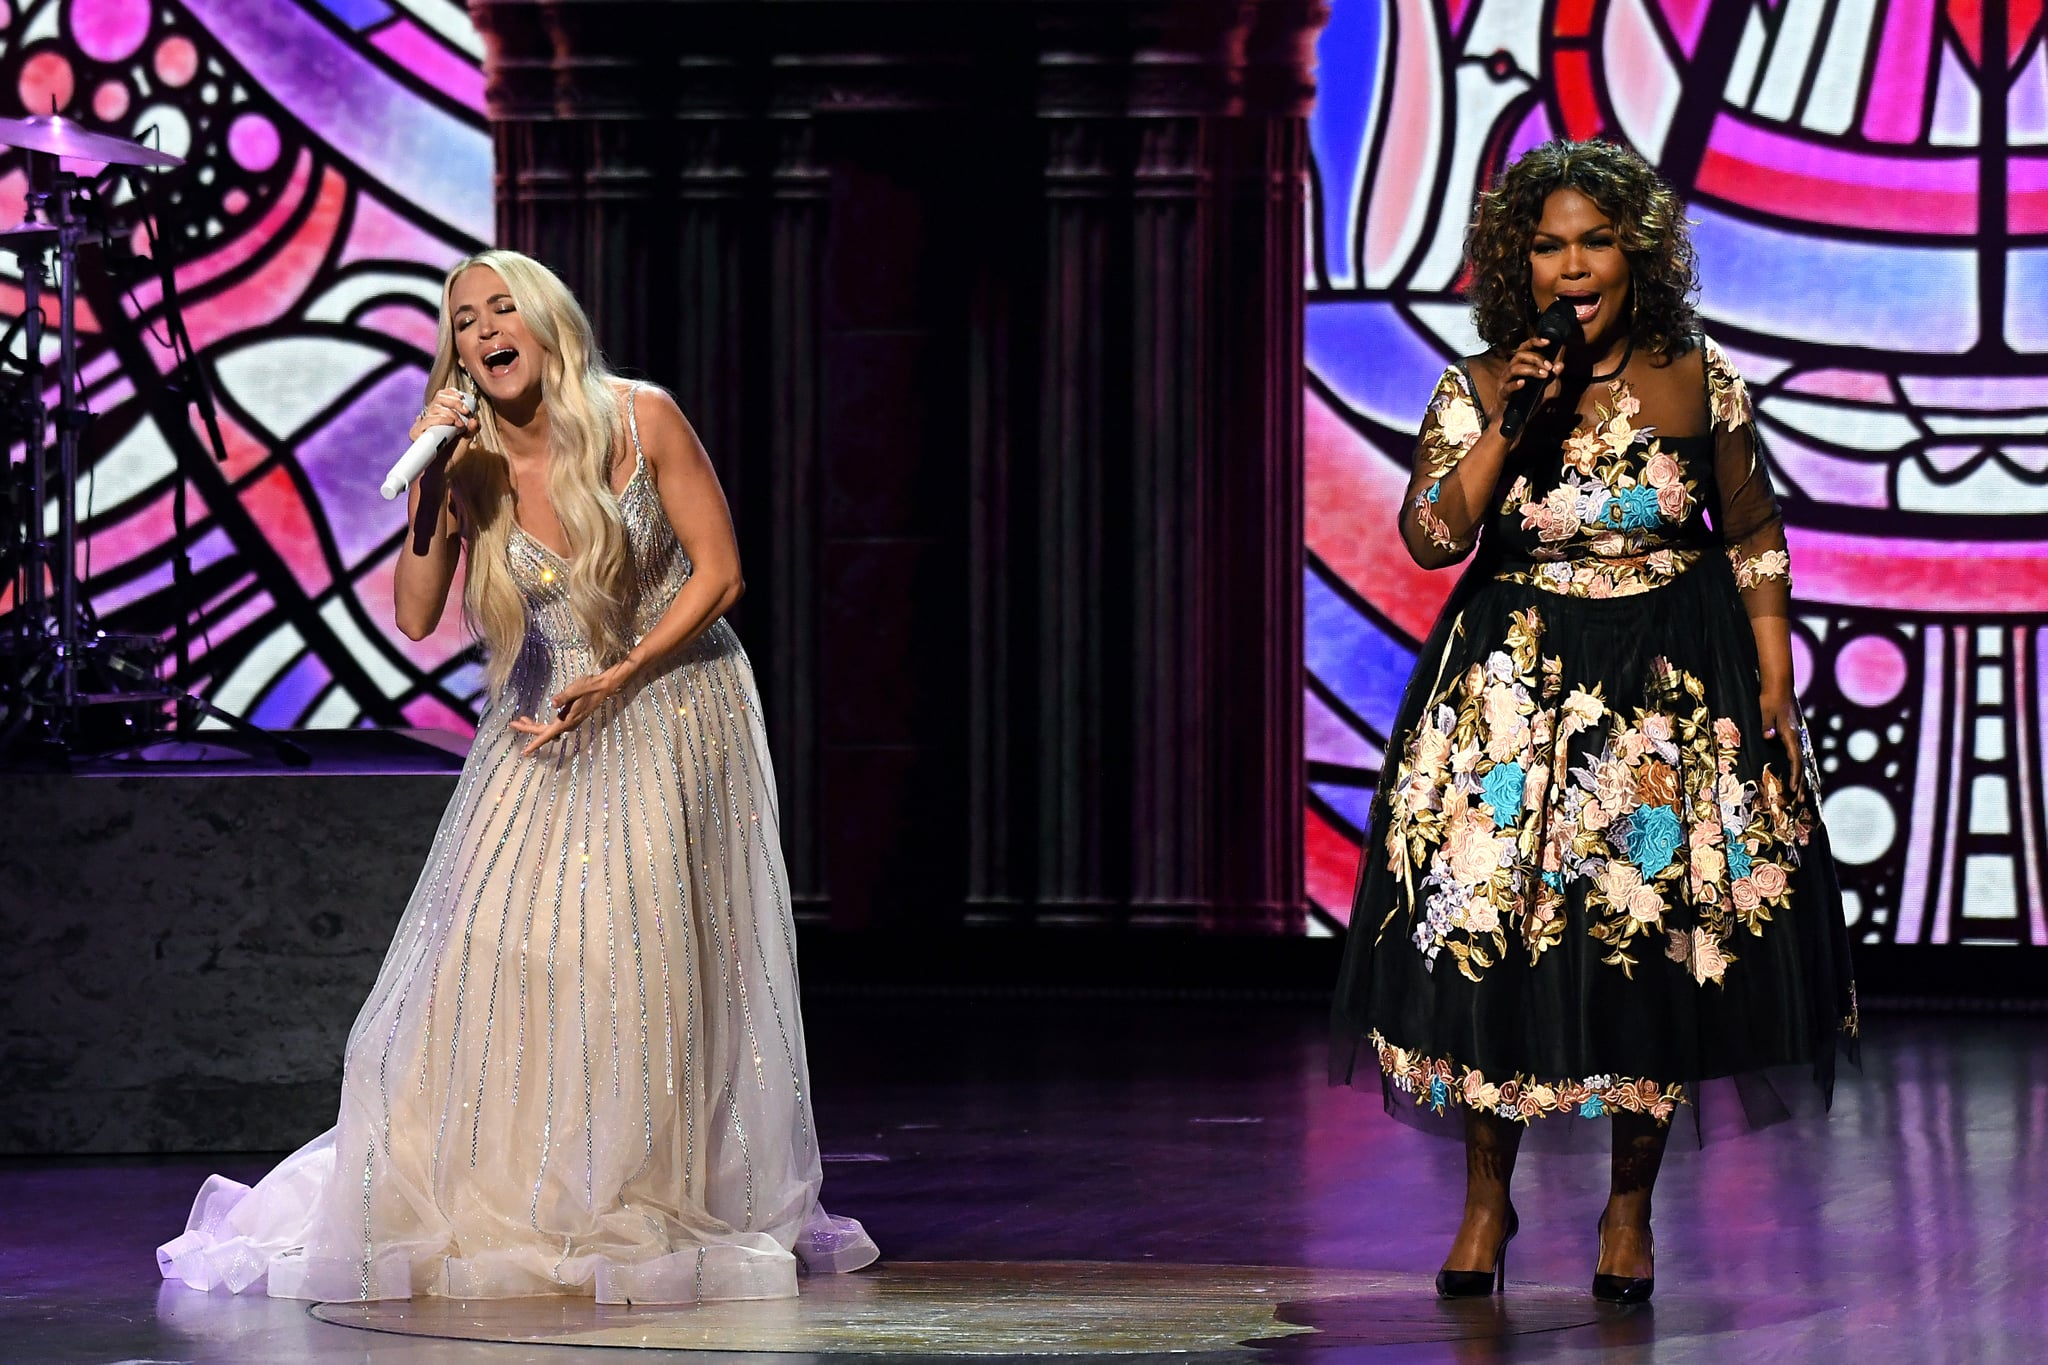 NASHVILLE, TENNESSEE - APRIL 18: (L-R) In this image released on April 18, Carrie Underwood and CeCe Winans perform onstage at the 56th Academy of Country Music Awards at the Grand Ole Opry on April 18, 2021 in Nashville, Tennessee. (Photo by Kevin Mazur/Getty Images for ACM)